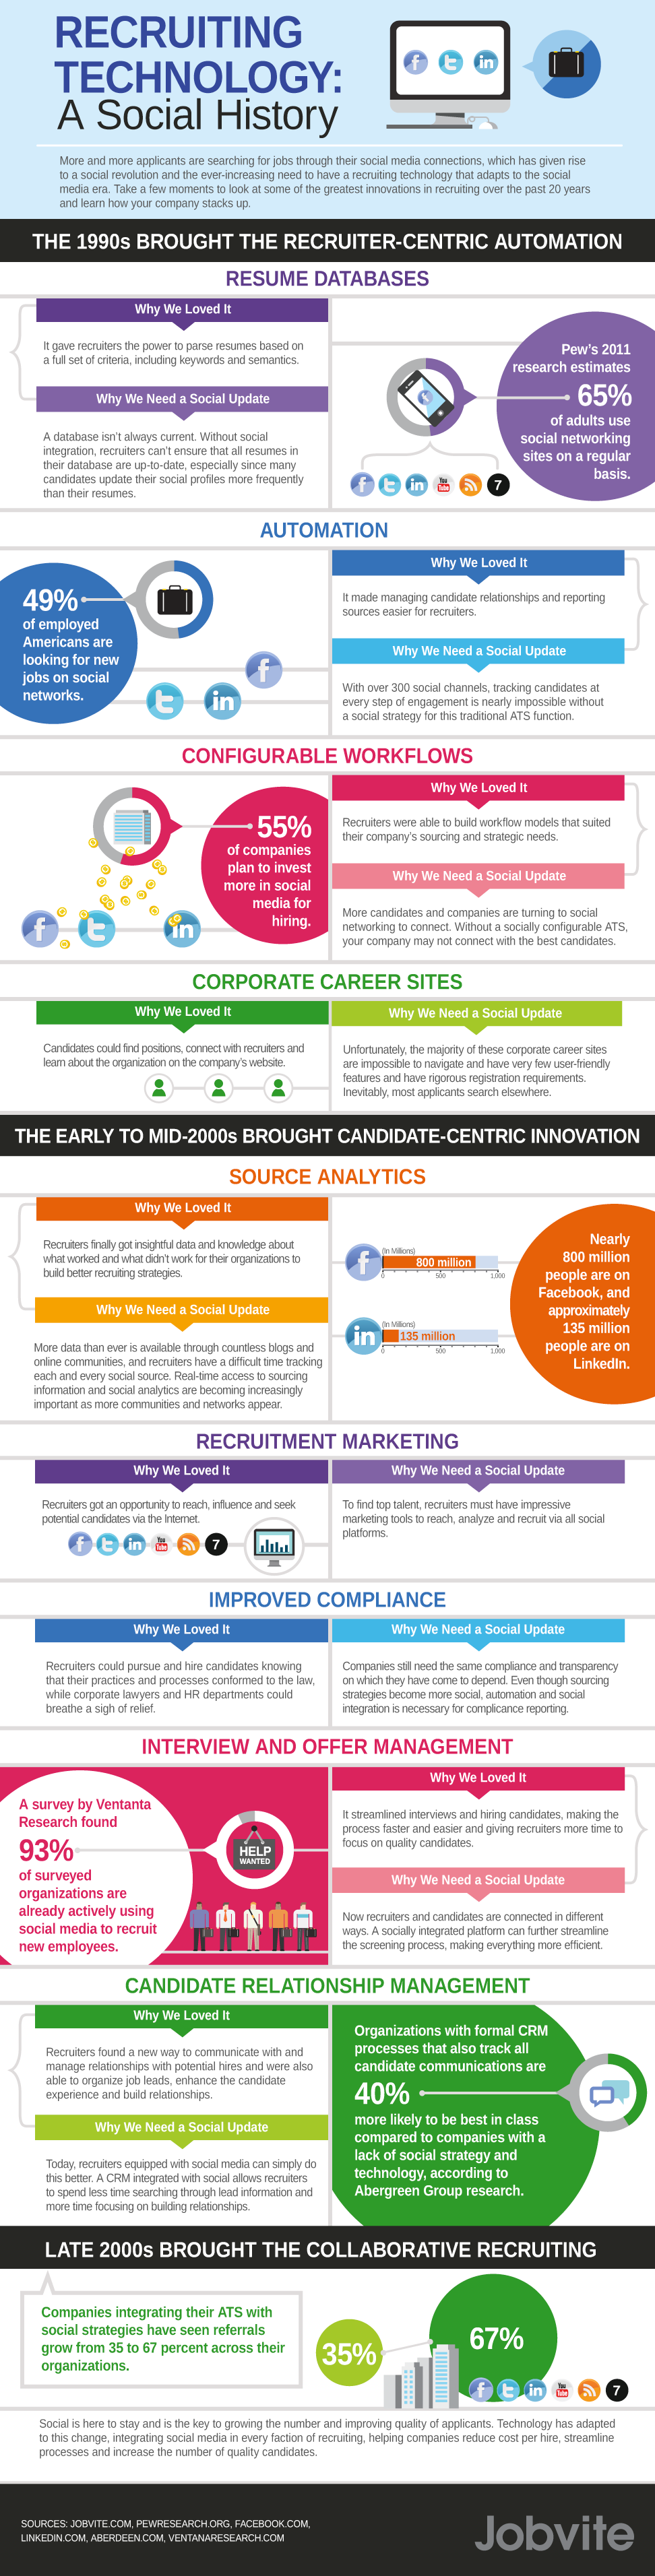 the history of social recruiting technology infographic the the history of social recruiting technology digital recruiting has certainly come a long way in